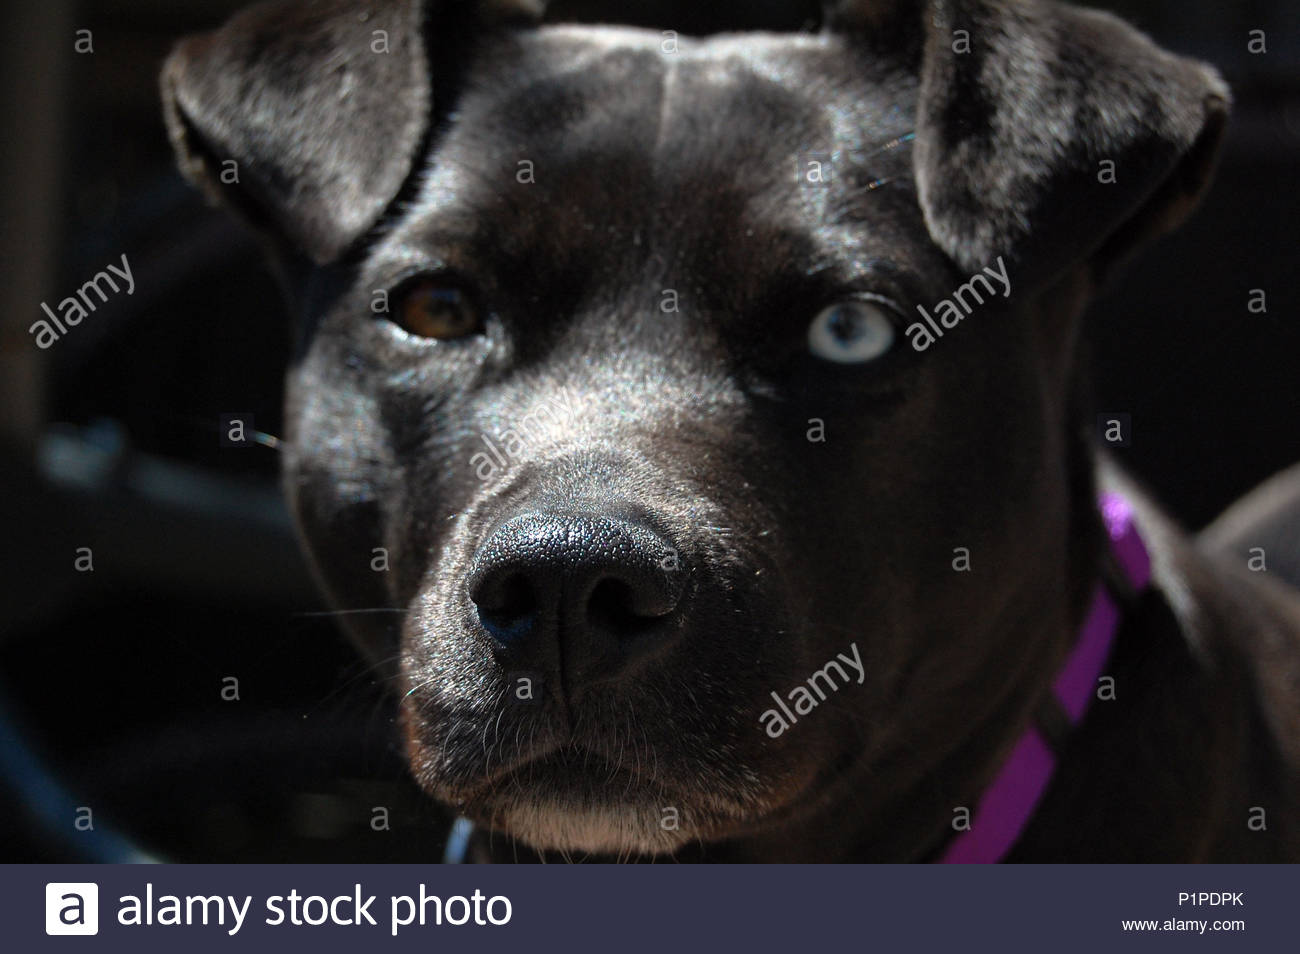 Black pitbull dog with heterochromia (two different colored eyes, one brown eye and one blue eye) - Stock Image